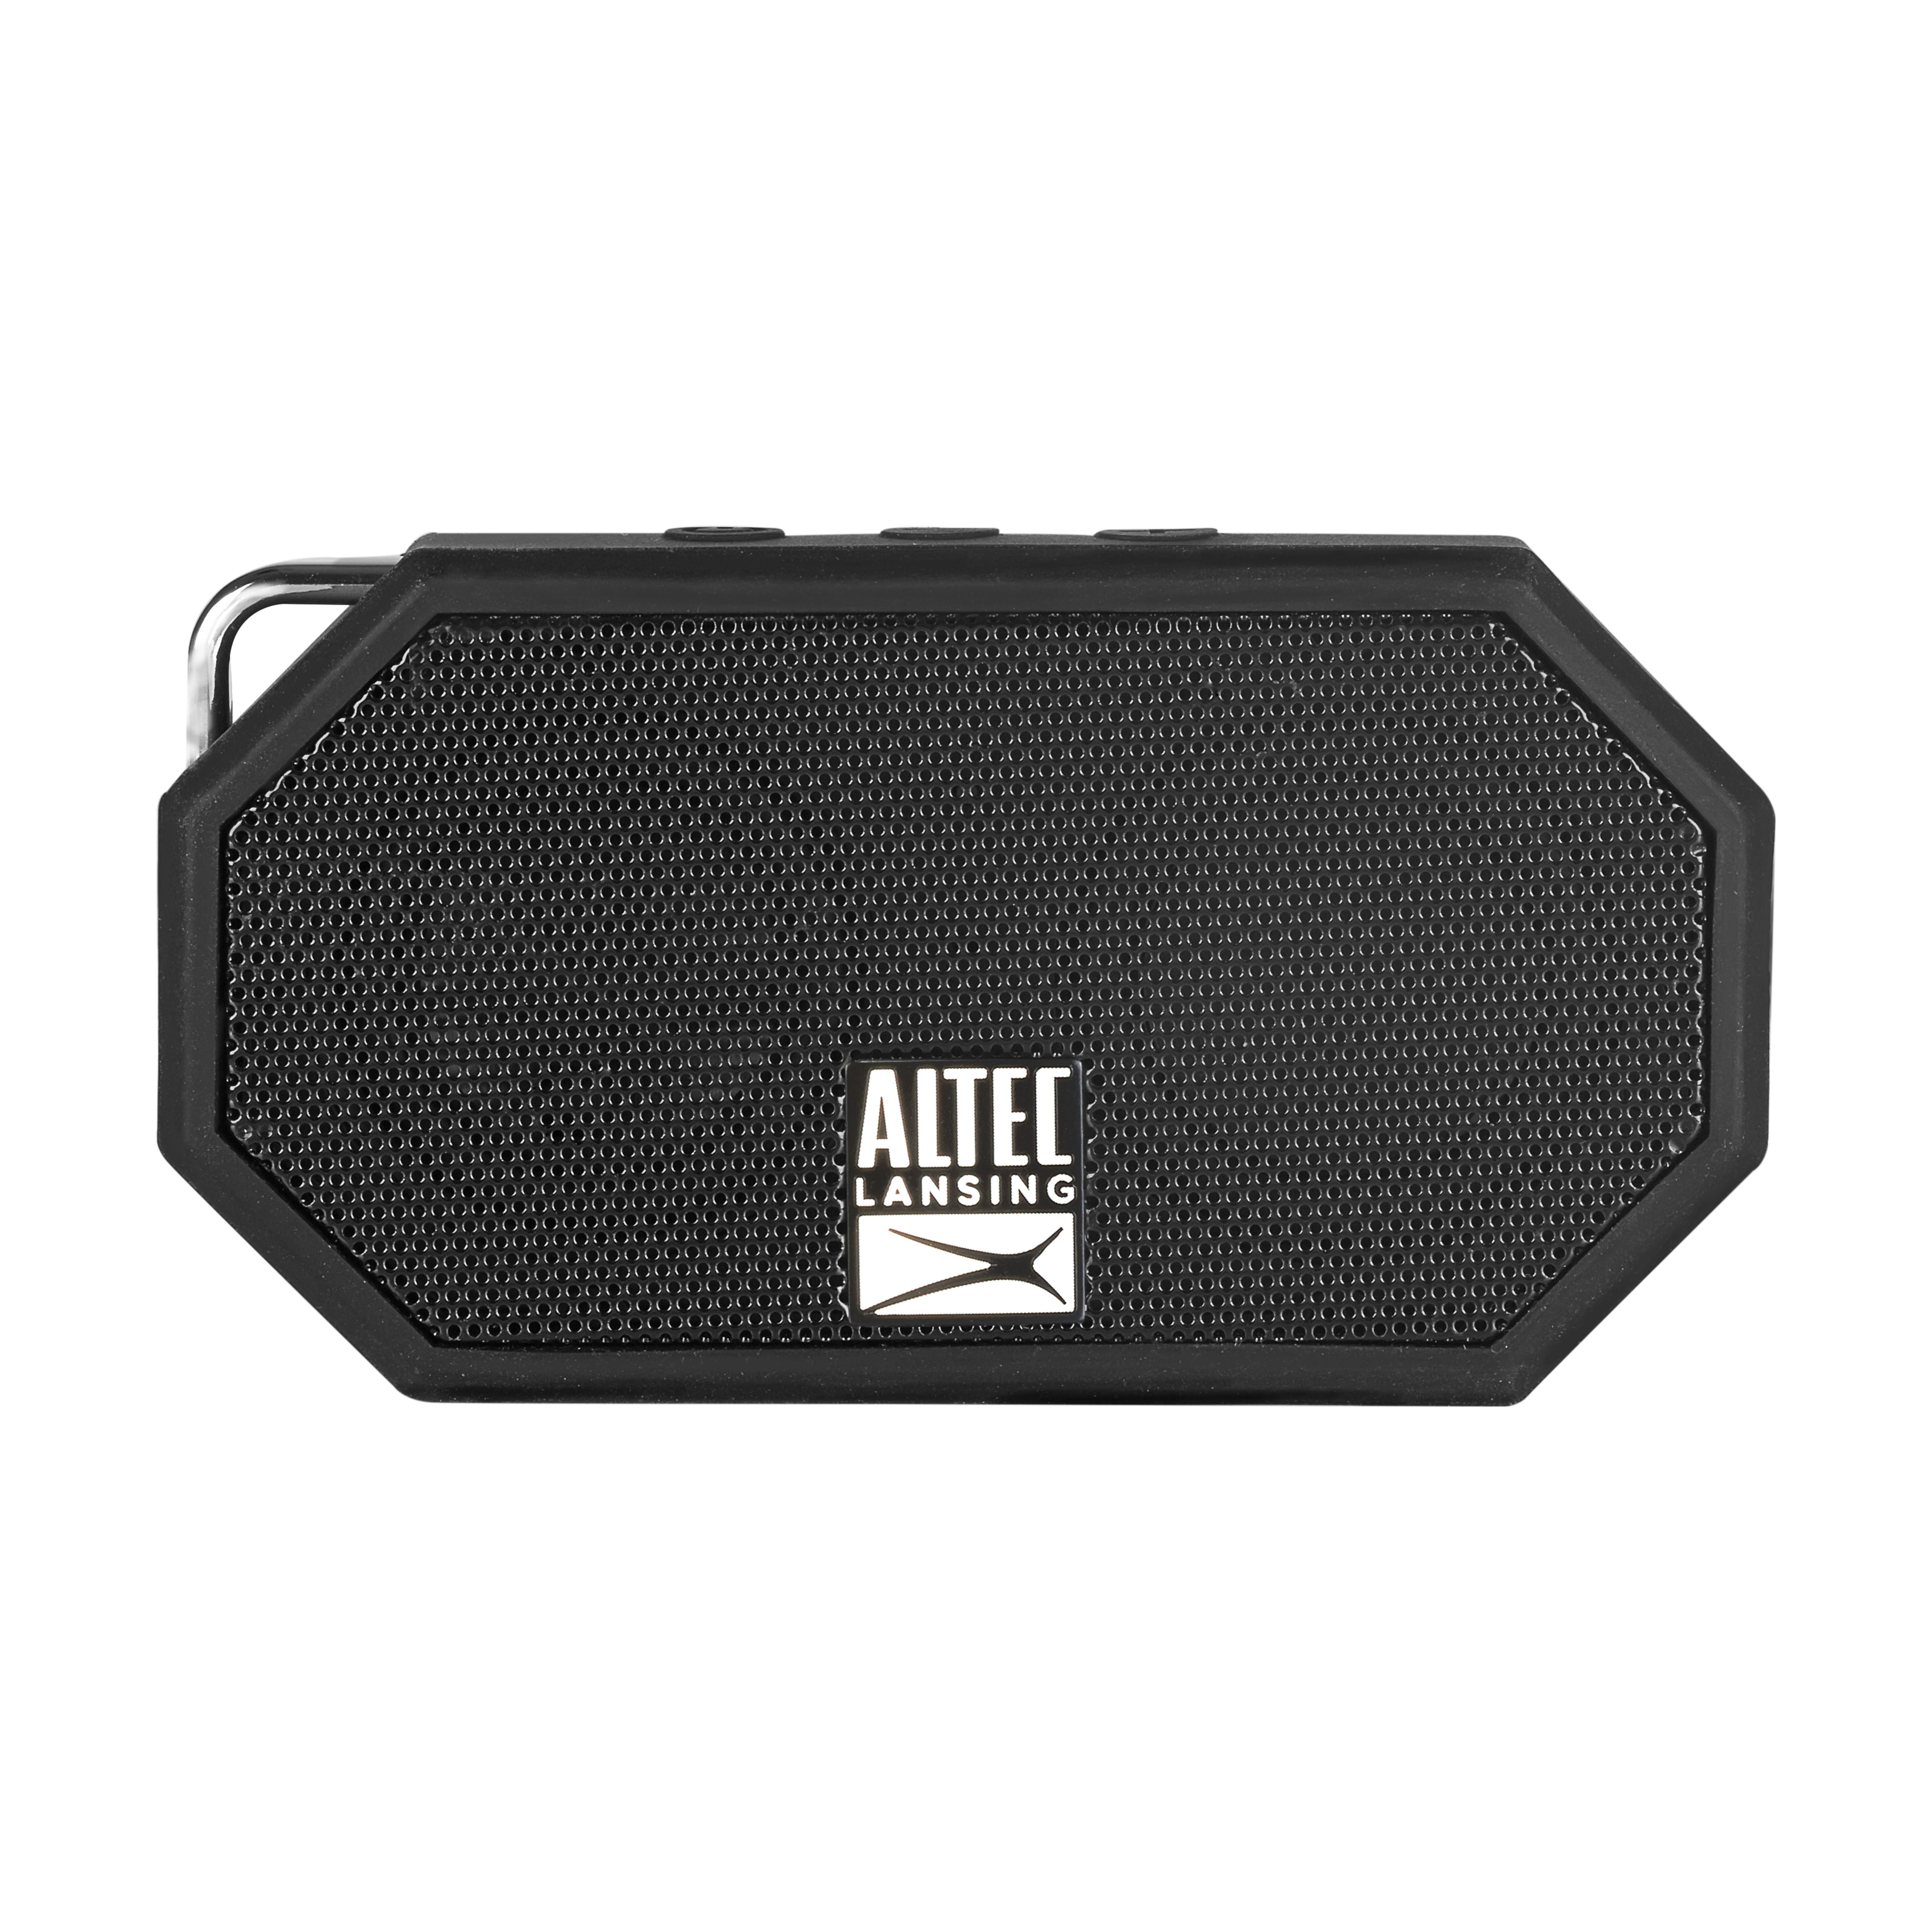 Some questions about my Altec 604-8G speakers